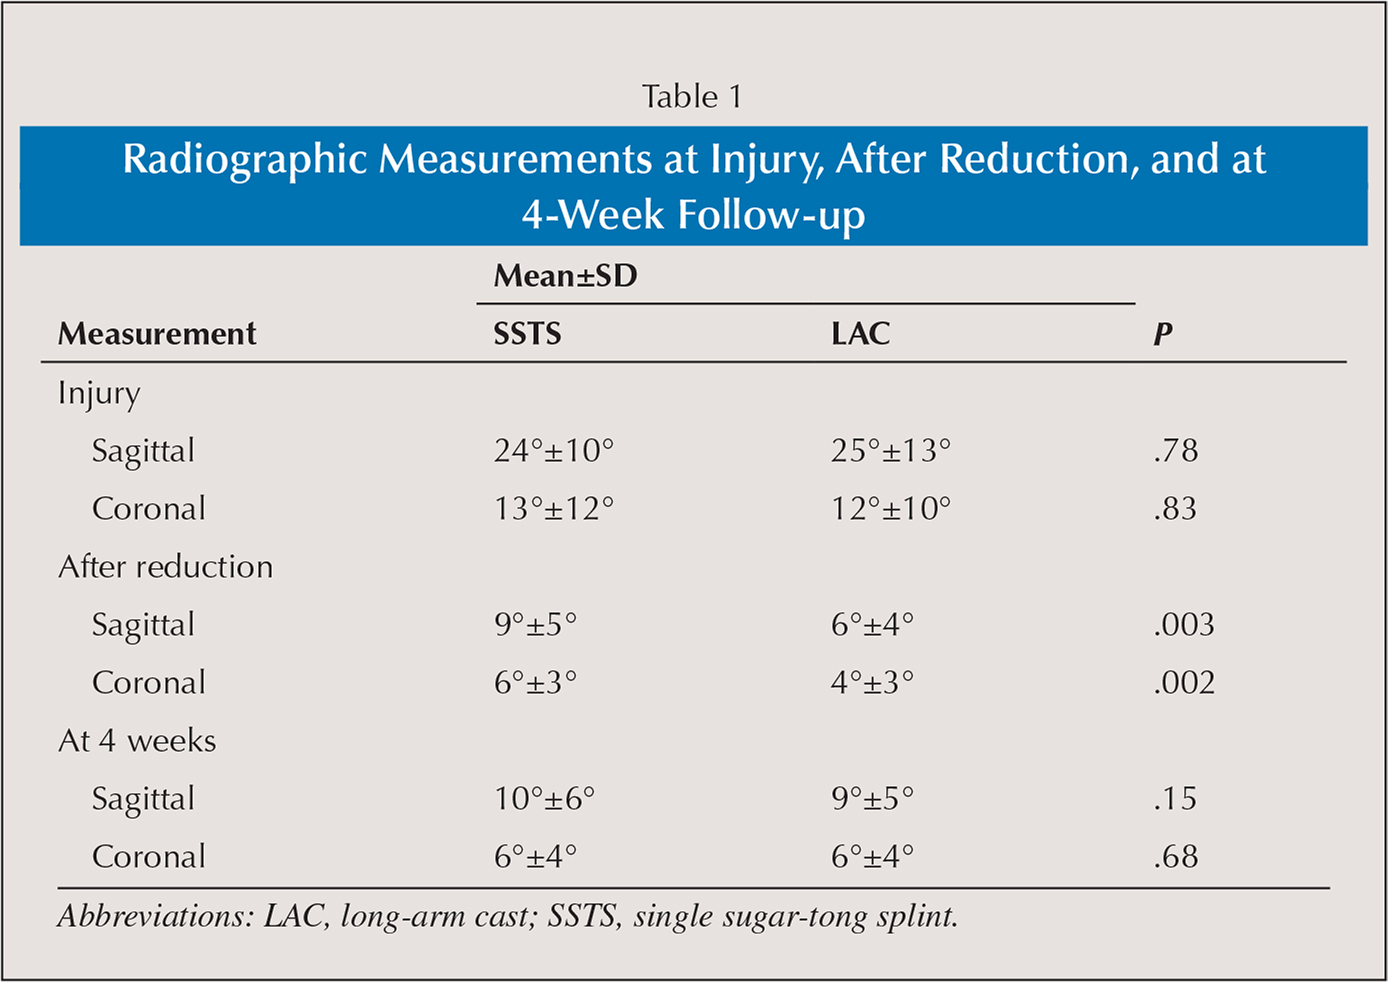 Radiographic Measurements at Injury, After Reduction, and at 4-Week Follow-up